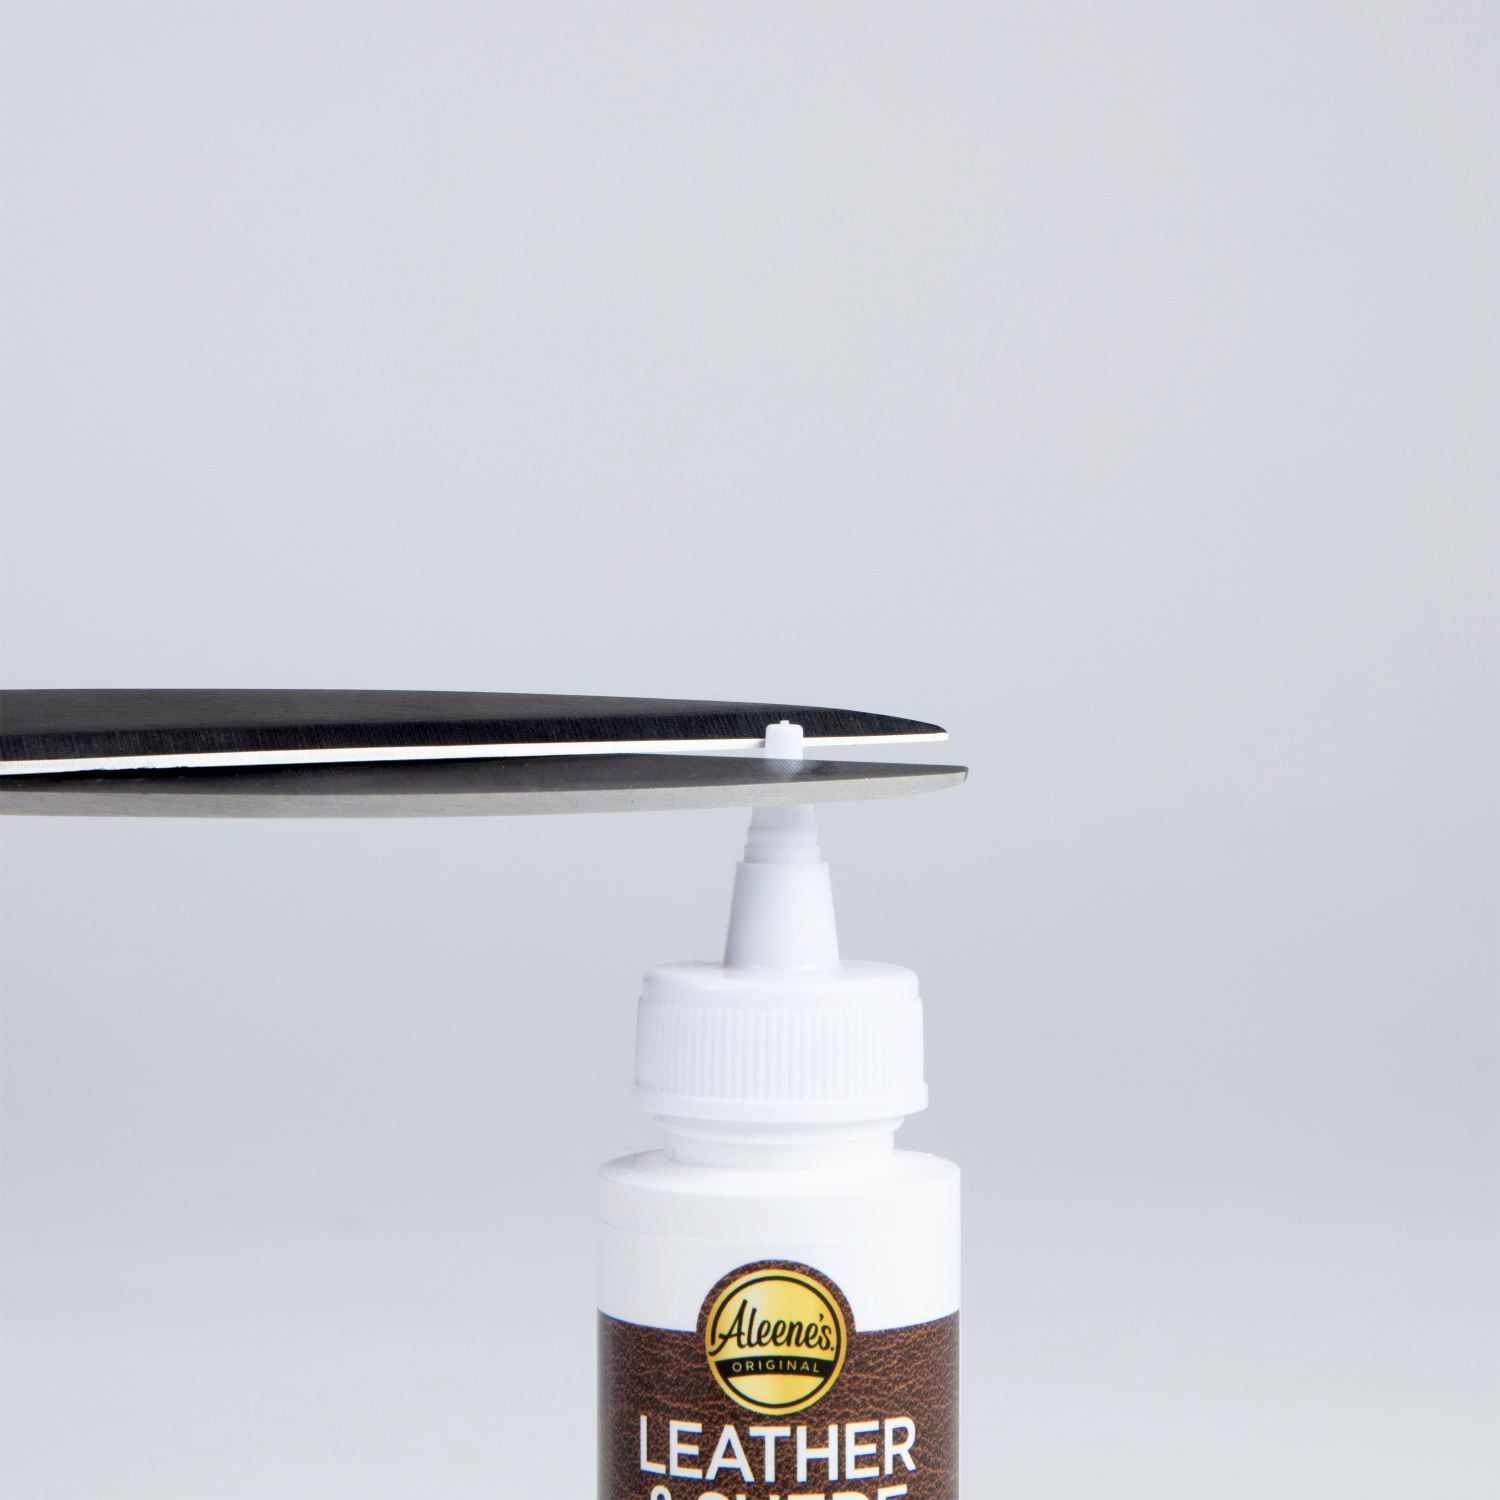 Aleene's Leather & Suede Glue Cutting the Tip